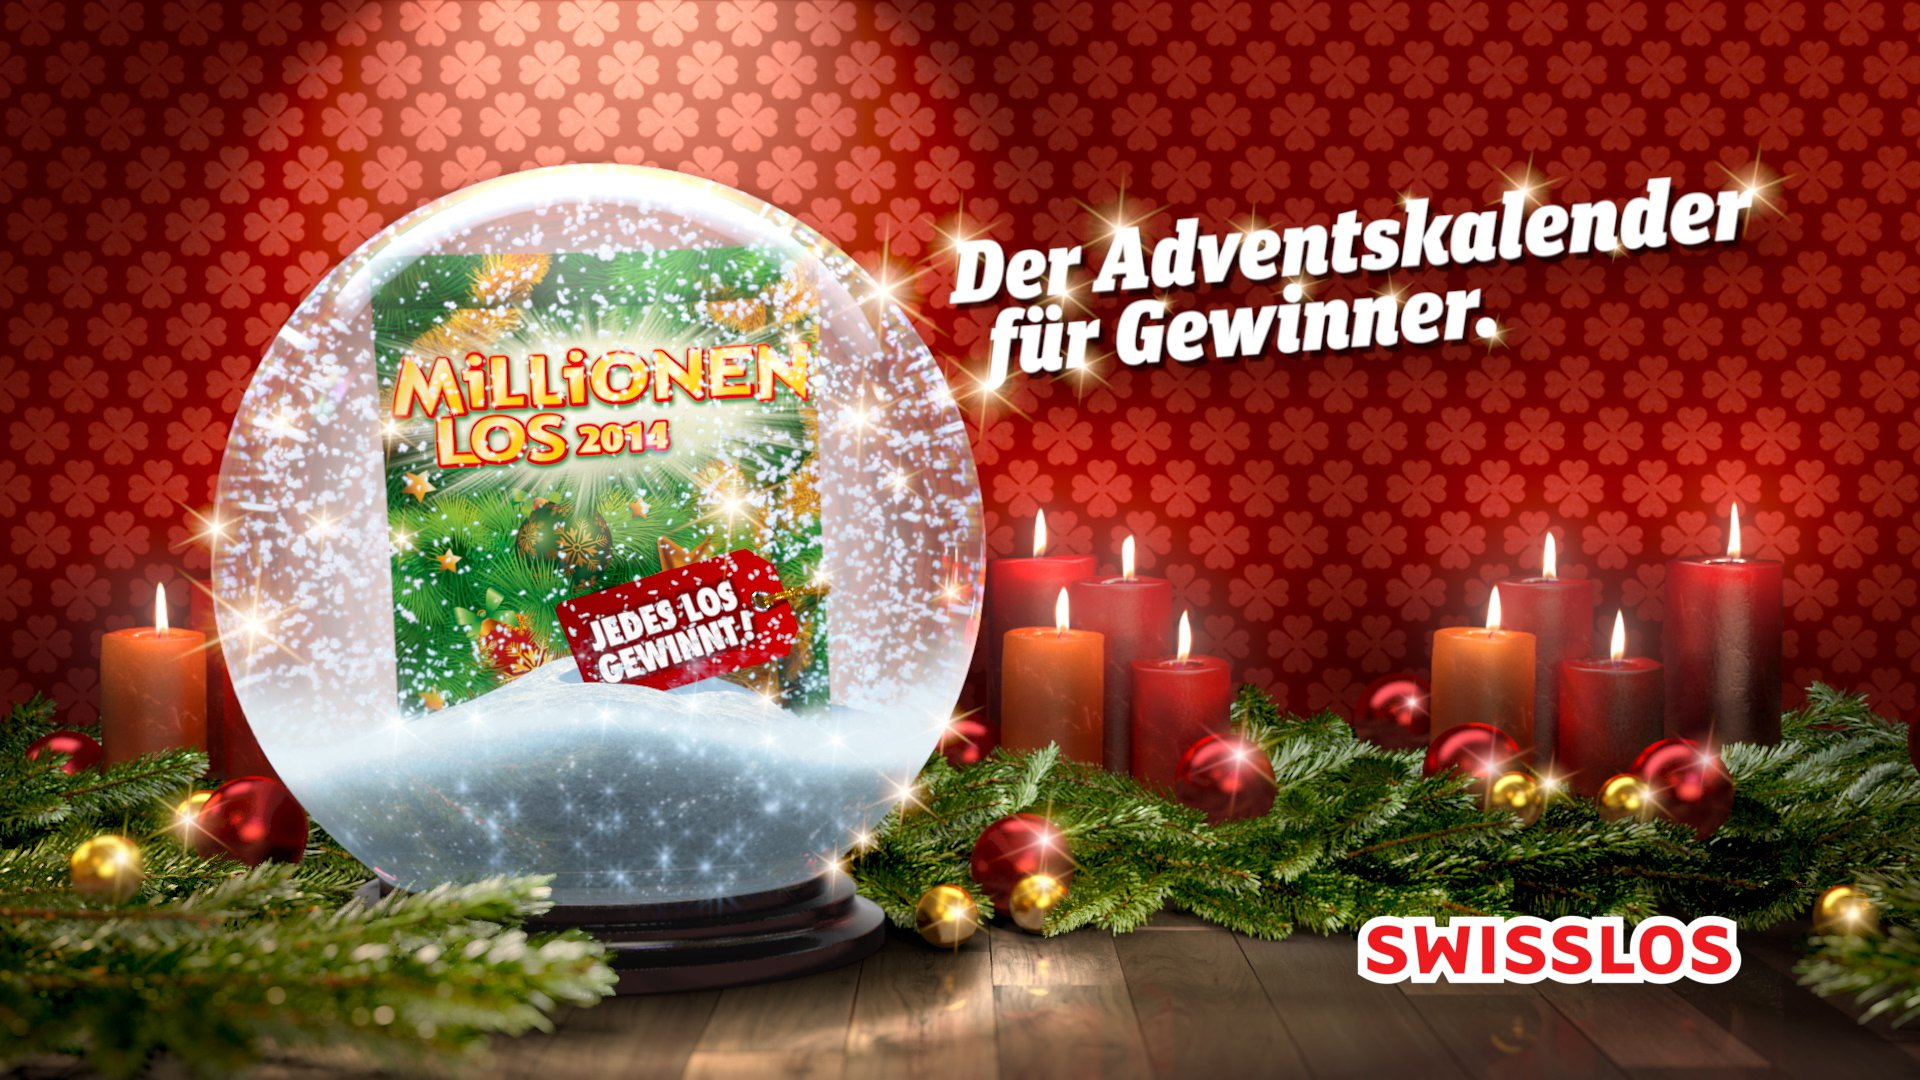 VFX rendering of a Swisslos in a snow globe surrounded fir branches and red, lit candles.